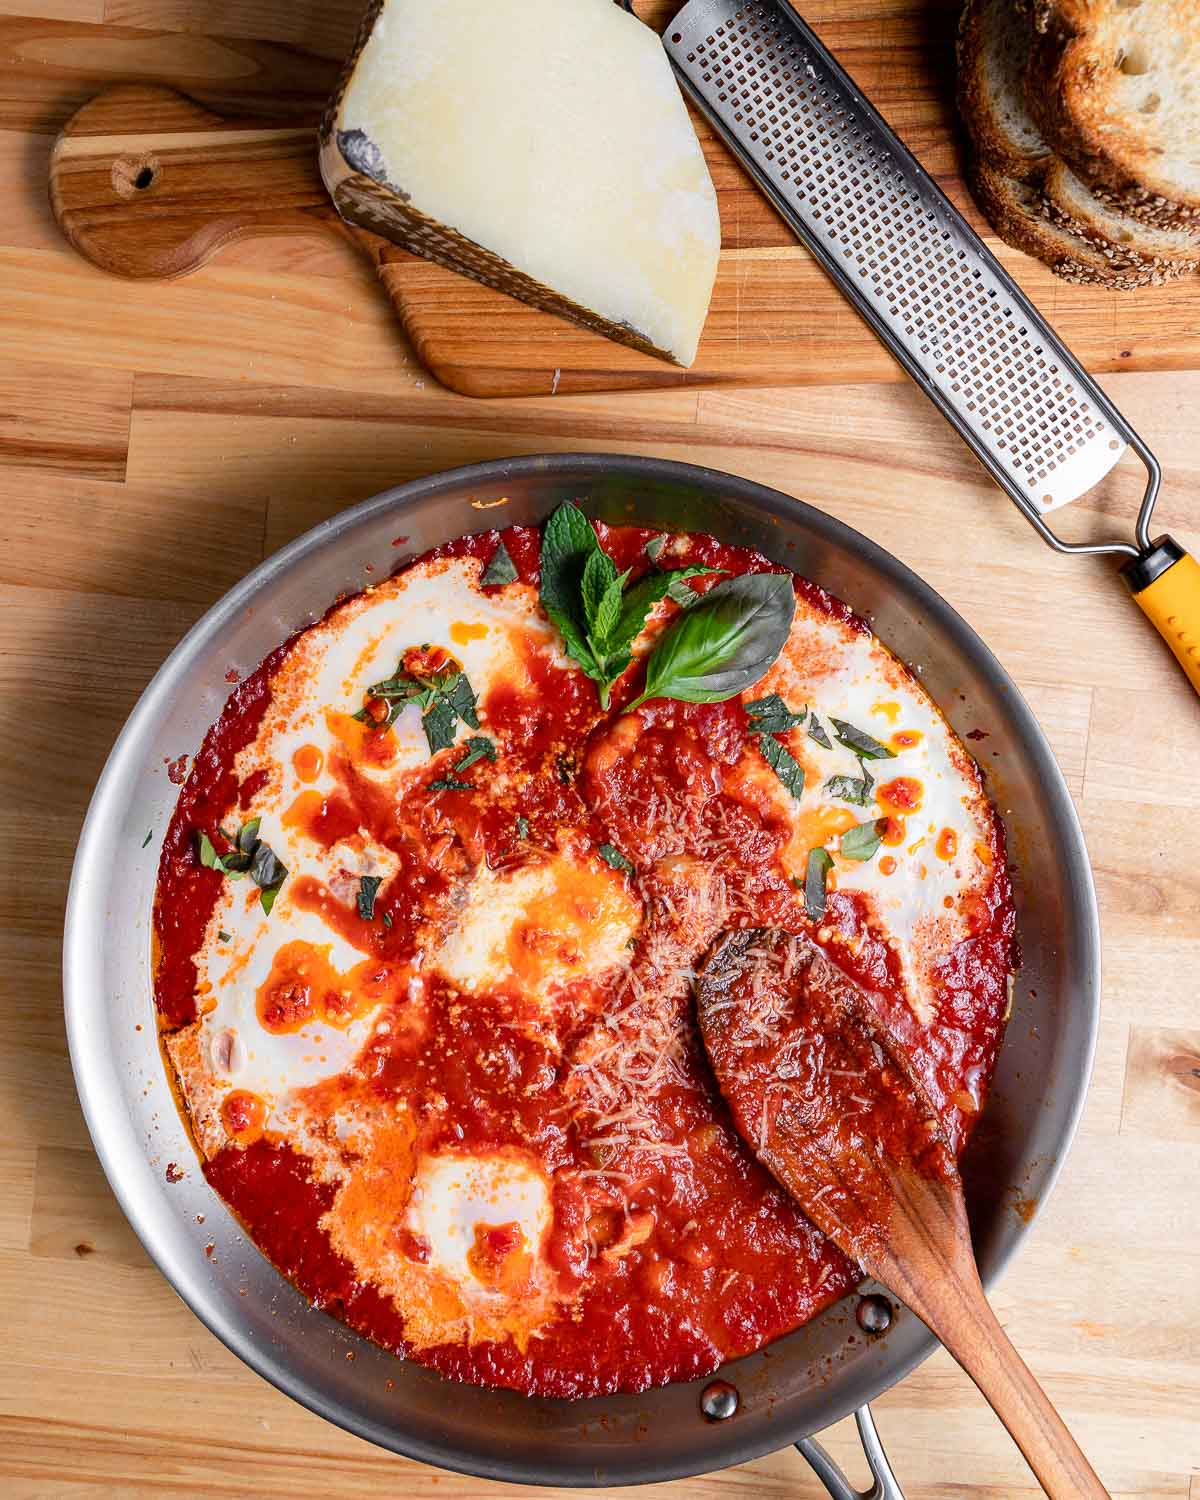 Pan of eggs in purgatory with cheese and bread on the side.